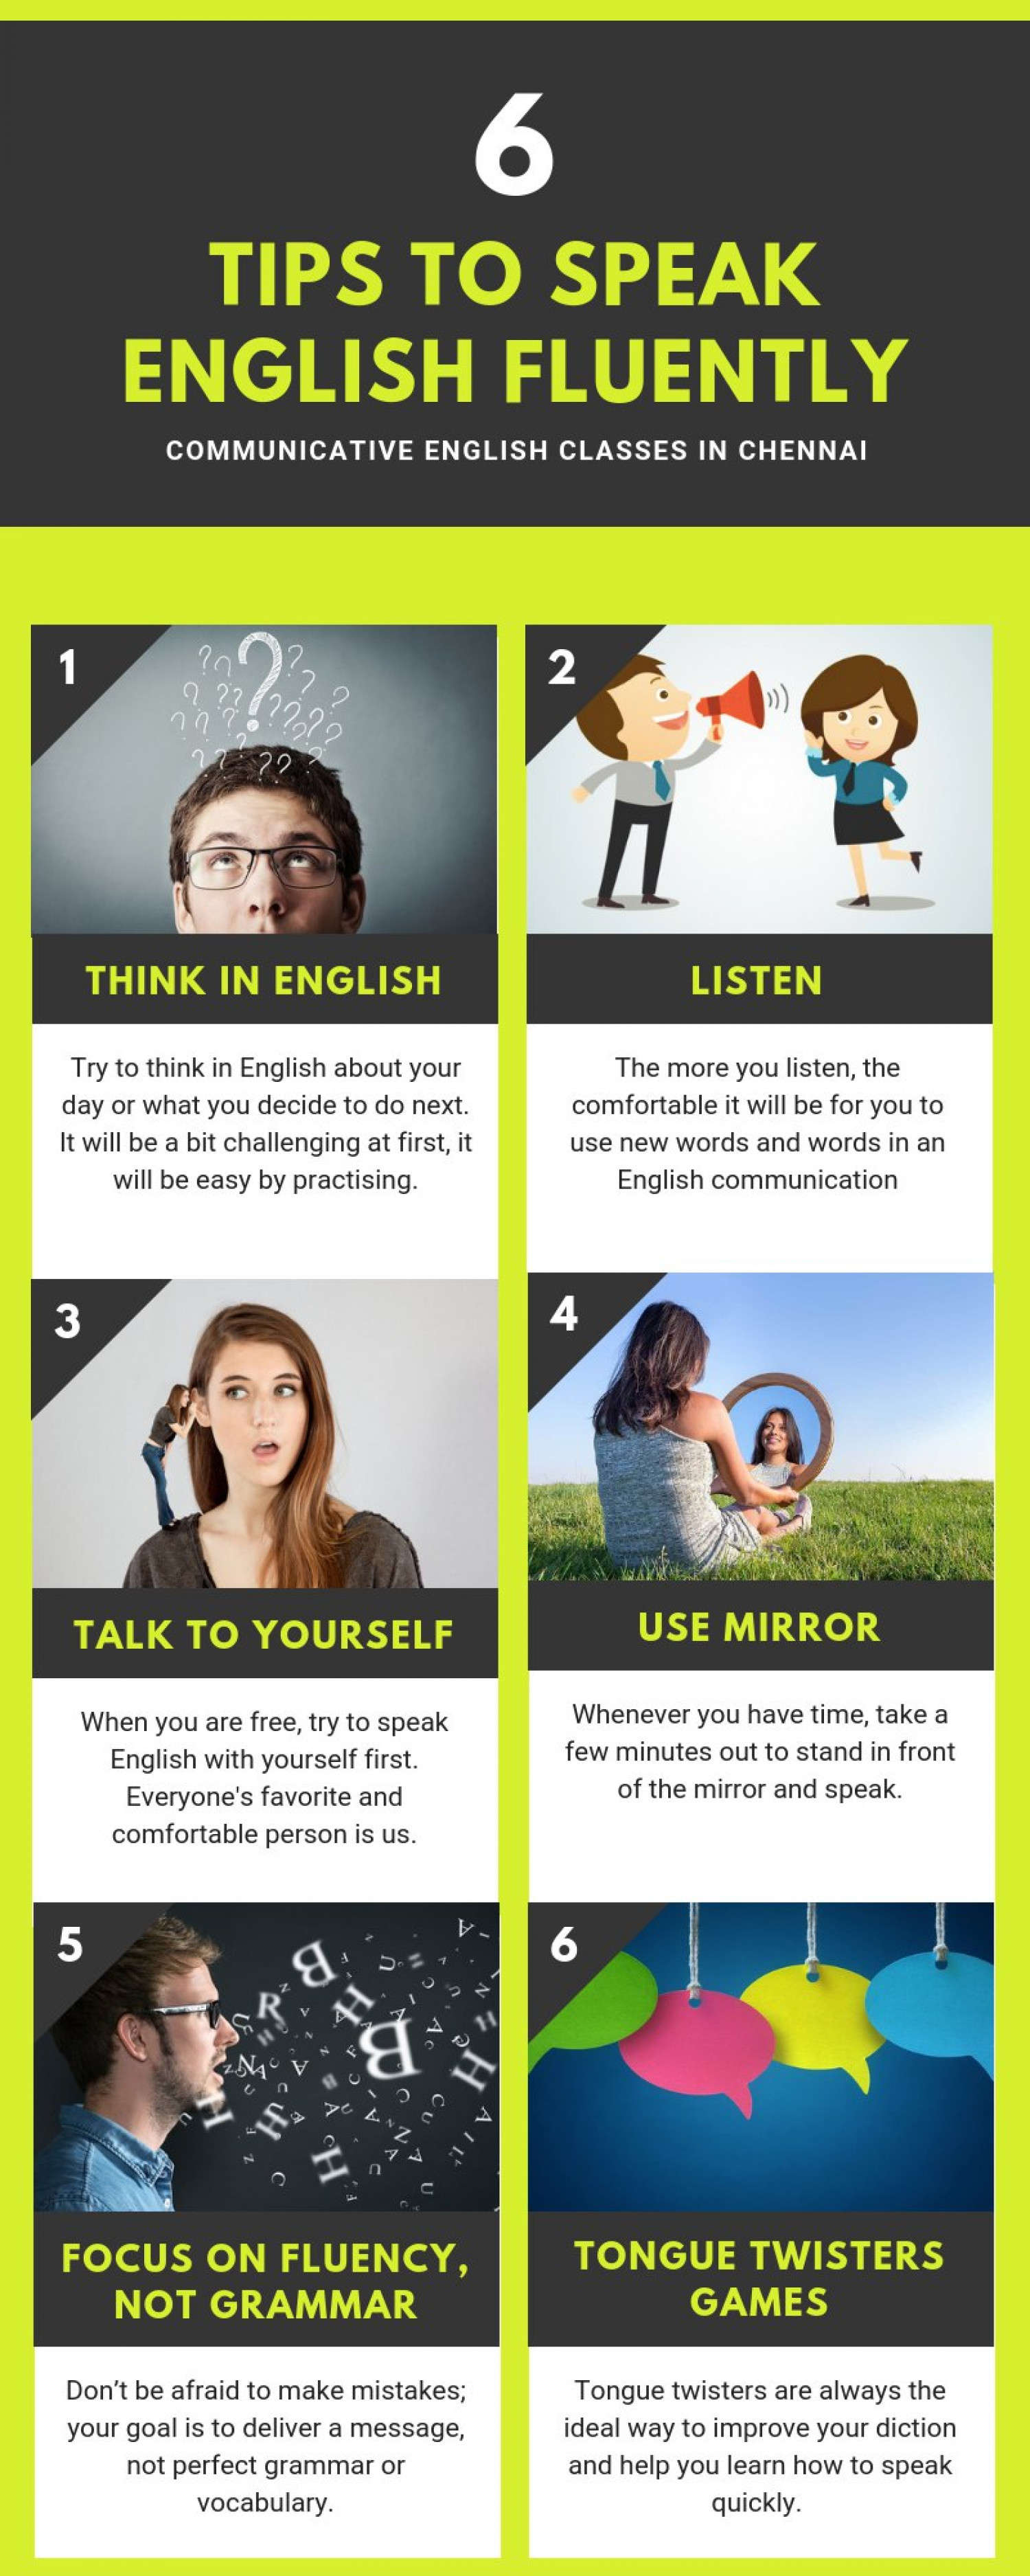 Tips to Speak English Fluently Infographic